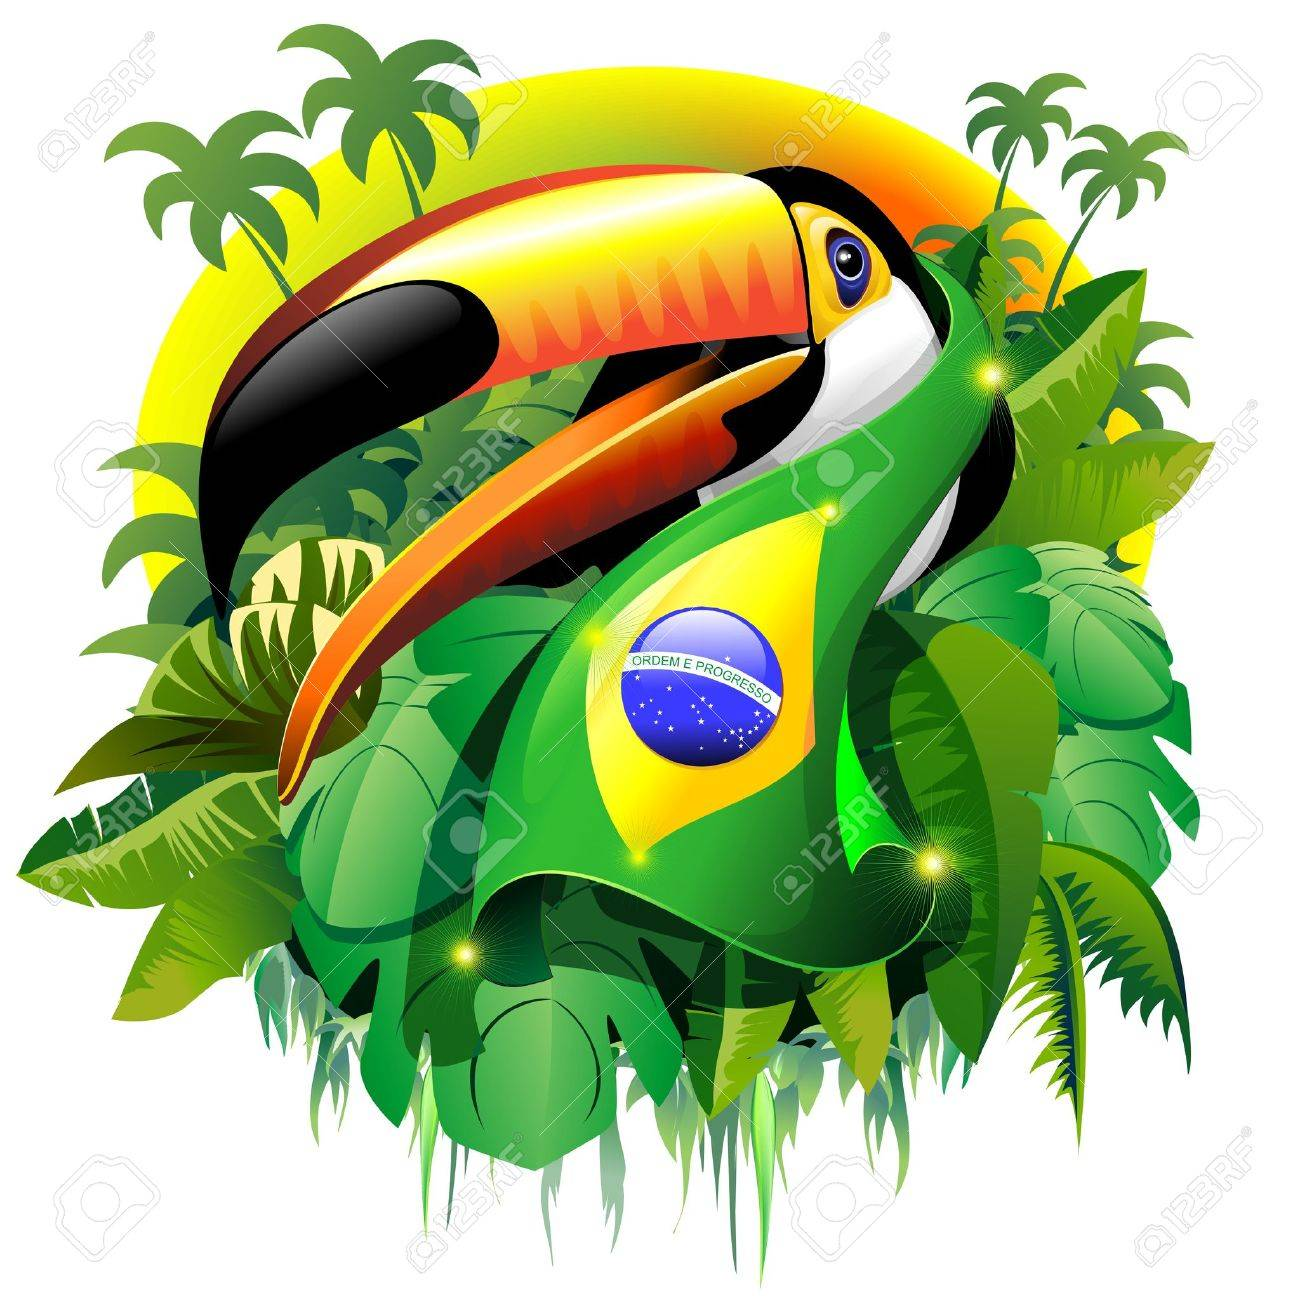 Toco Toucan with Brazil Flag - 27902556